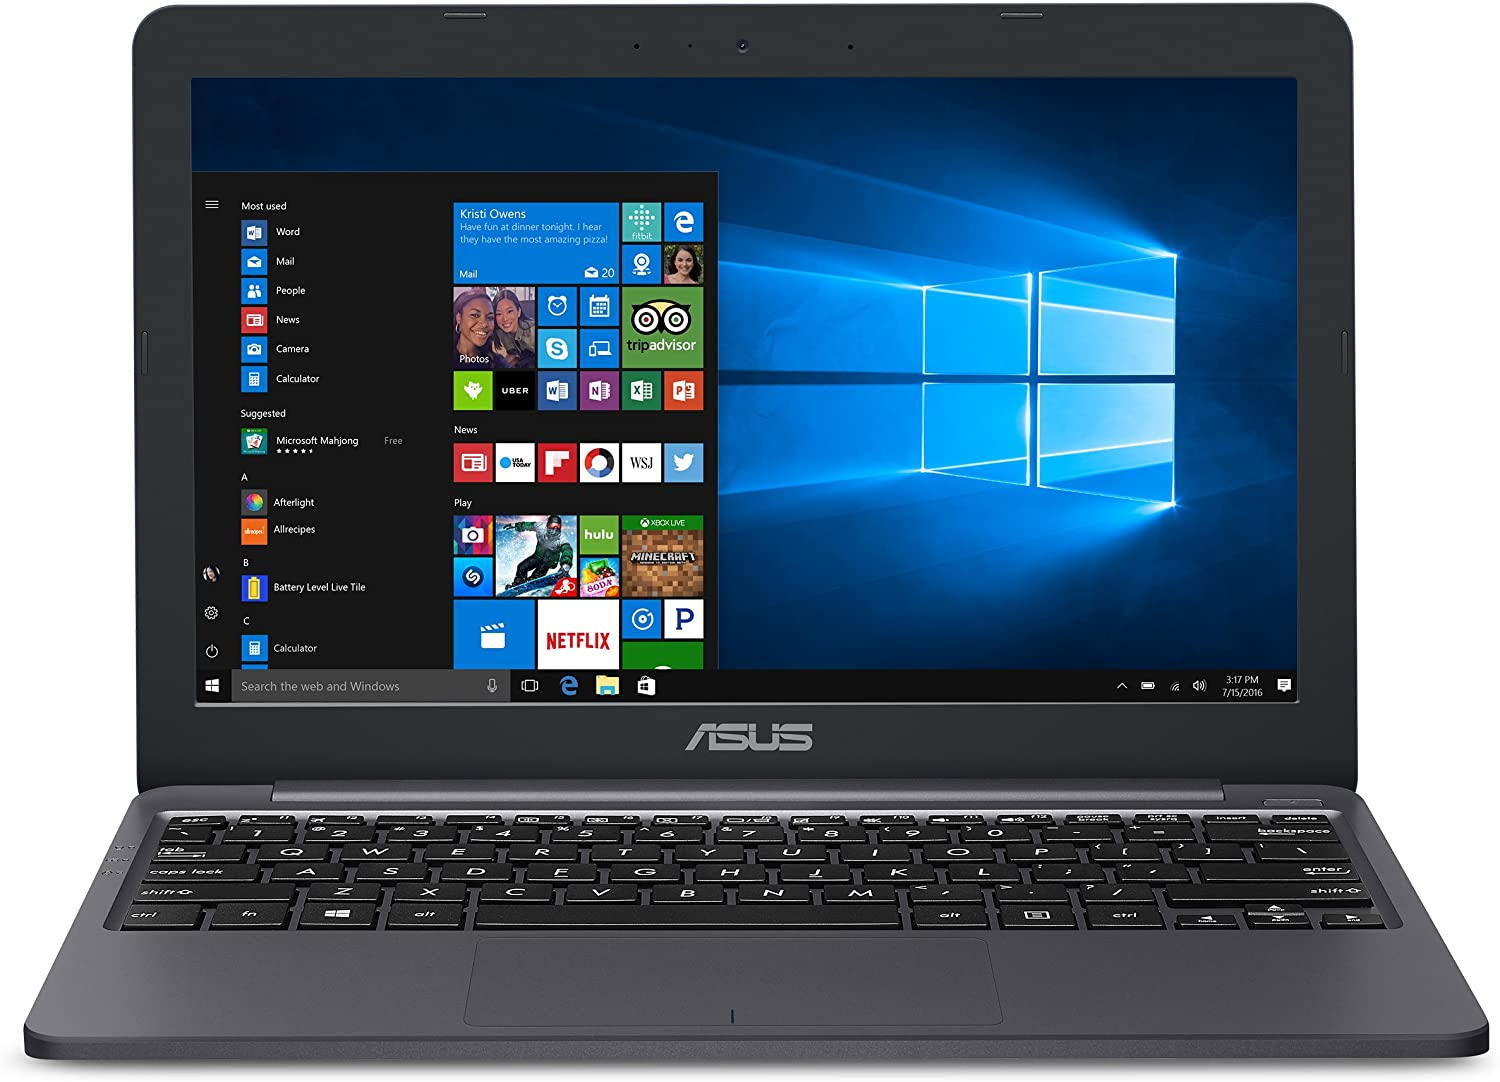 """ASUS L203MA-DS04 VivoBook L203MA Laptop, 11.6"""" HD Display, Intel Celeron Dual Core CPU, 4GB RAM, 64GB Storage, USB-C, Windows 10 Home In S Mode, Up To 10 Hours Battery Life, One Year Of Microsoft 365: Computers & Accessories"""